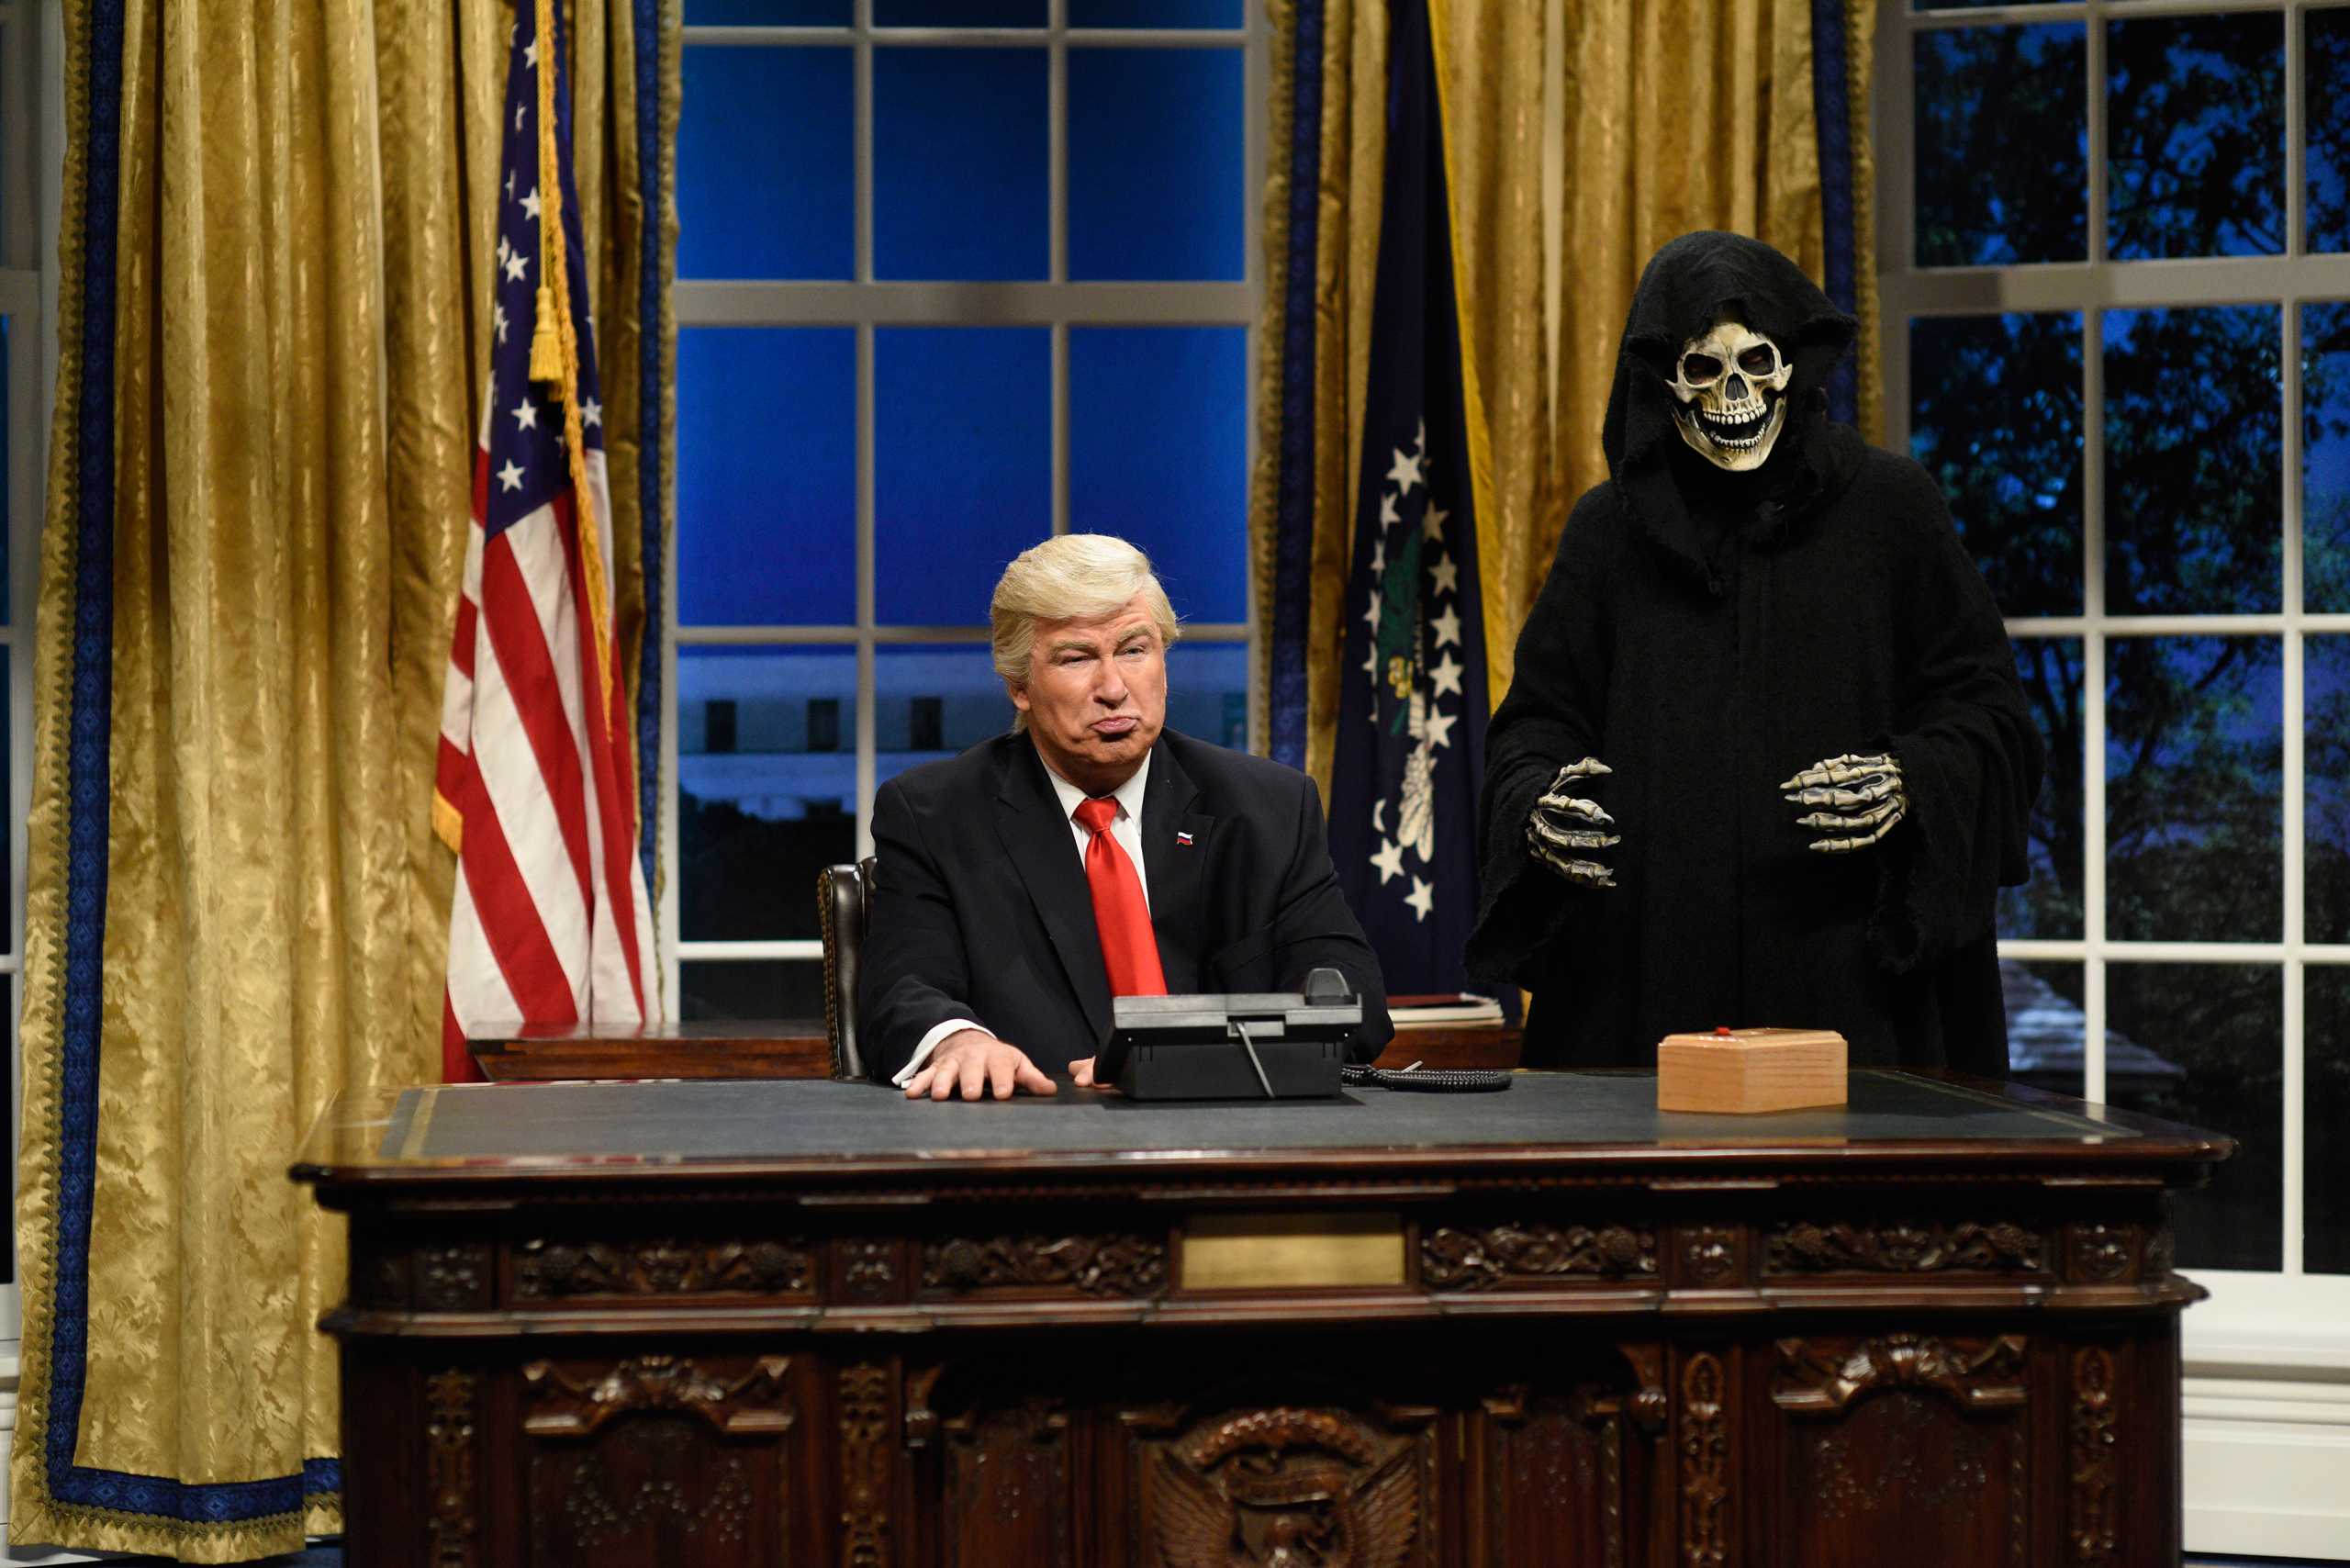 Alec Baldwin as President Donald J. Trump and Mikey Day as advisor Steve Bannon during the Oval Office Cold Open on Feb. 4, 2017.